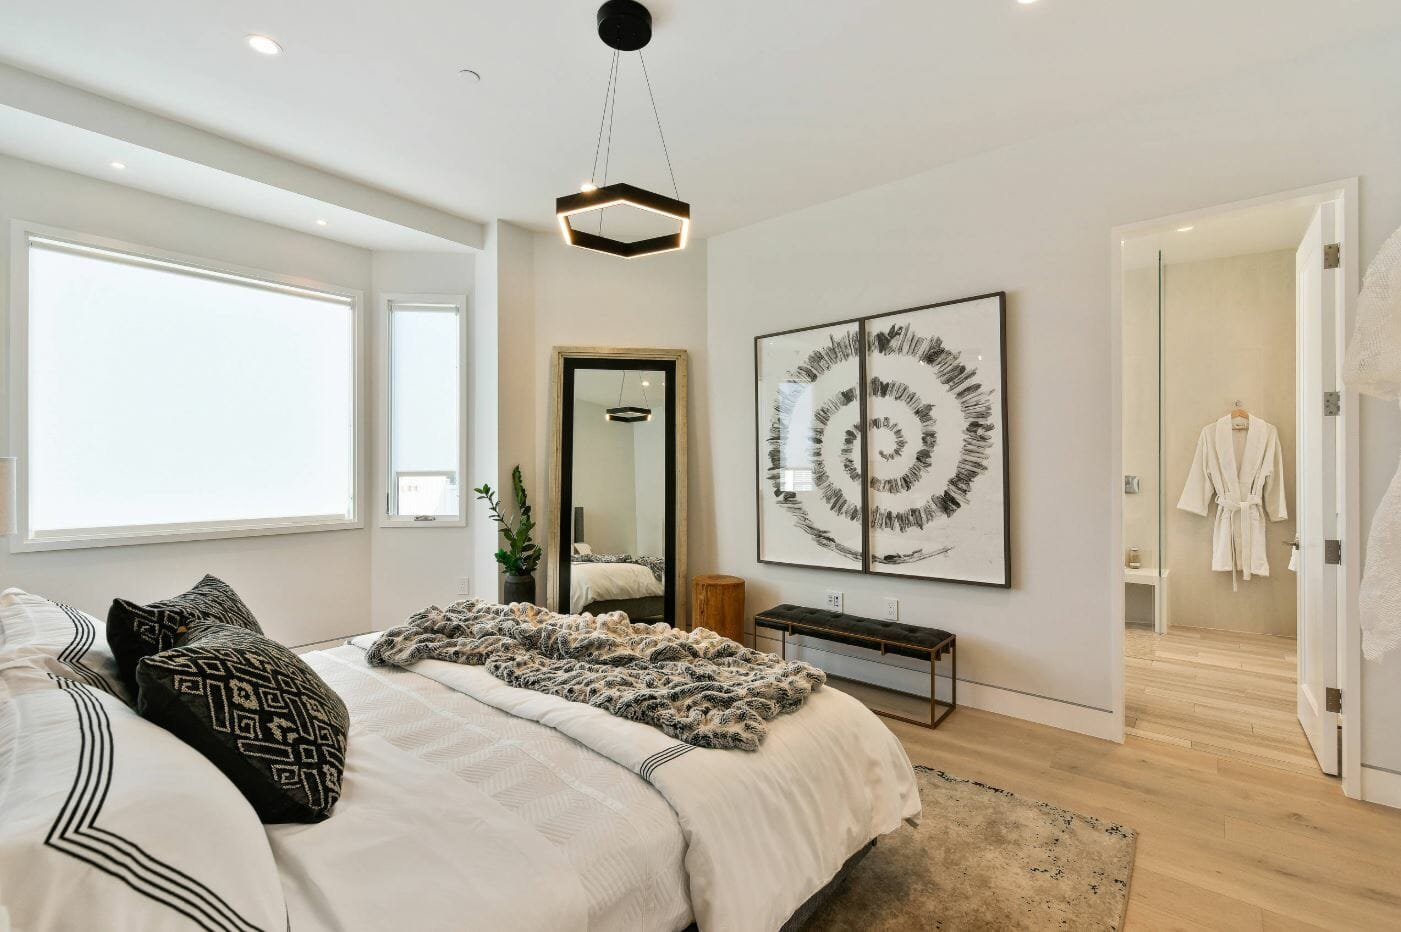 Before & After: Sophisticated Contemporary Bedroom Design Online